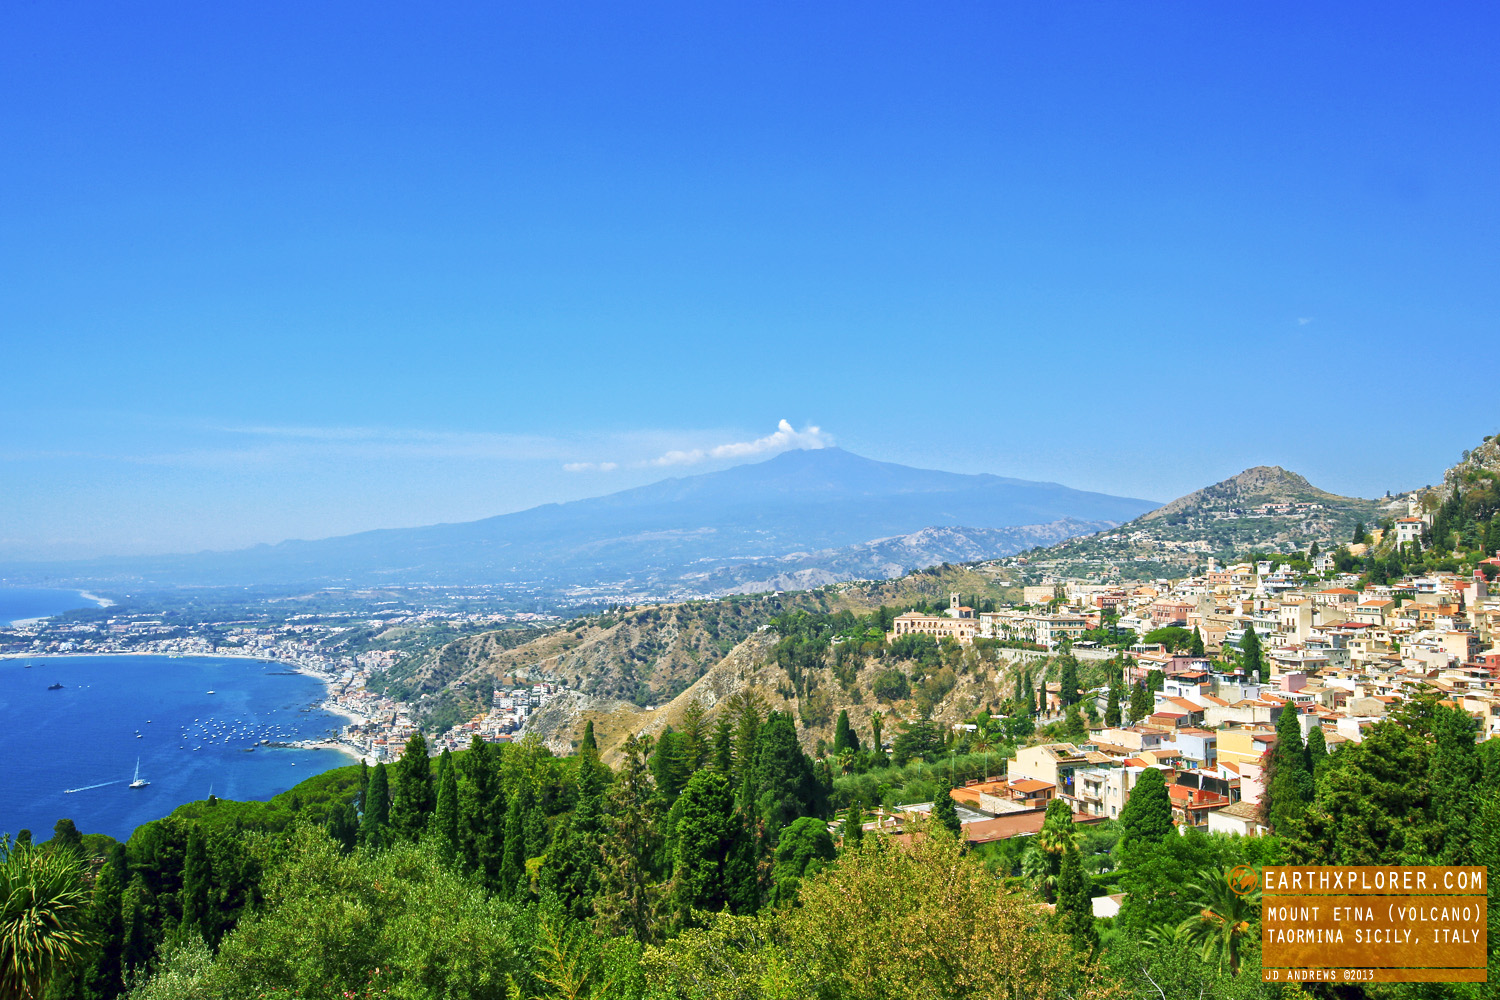 Mount Etna has erupted every year since 2001 (except for 2007)